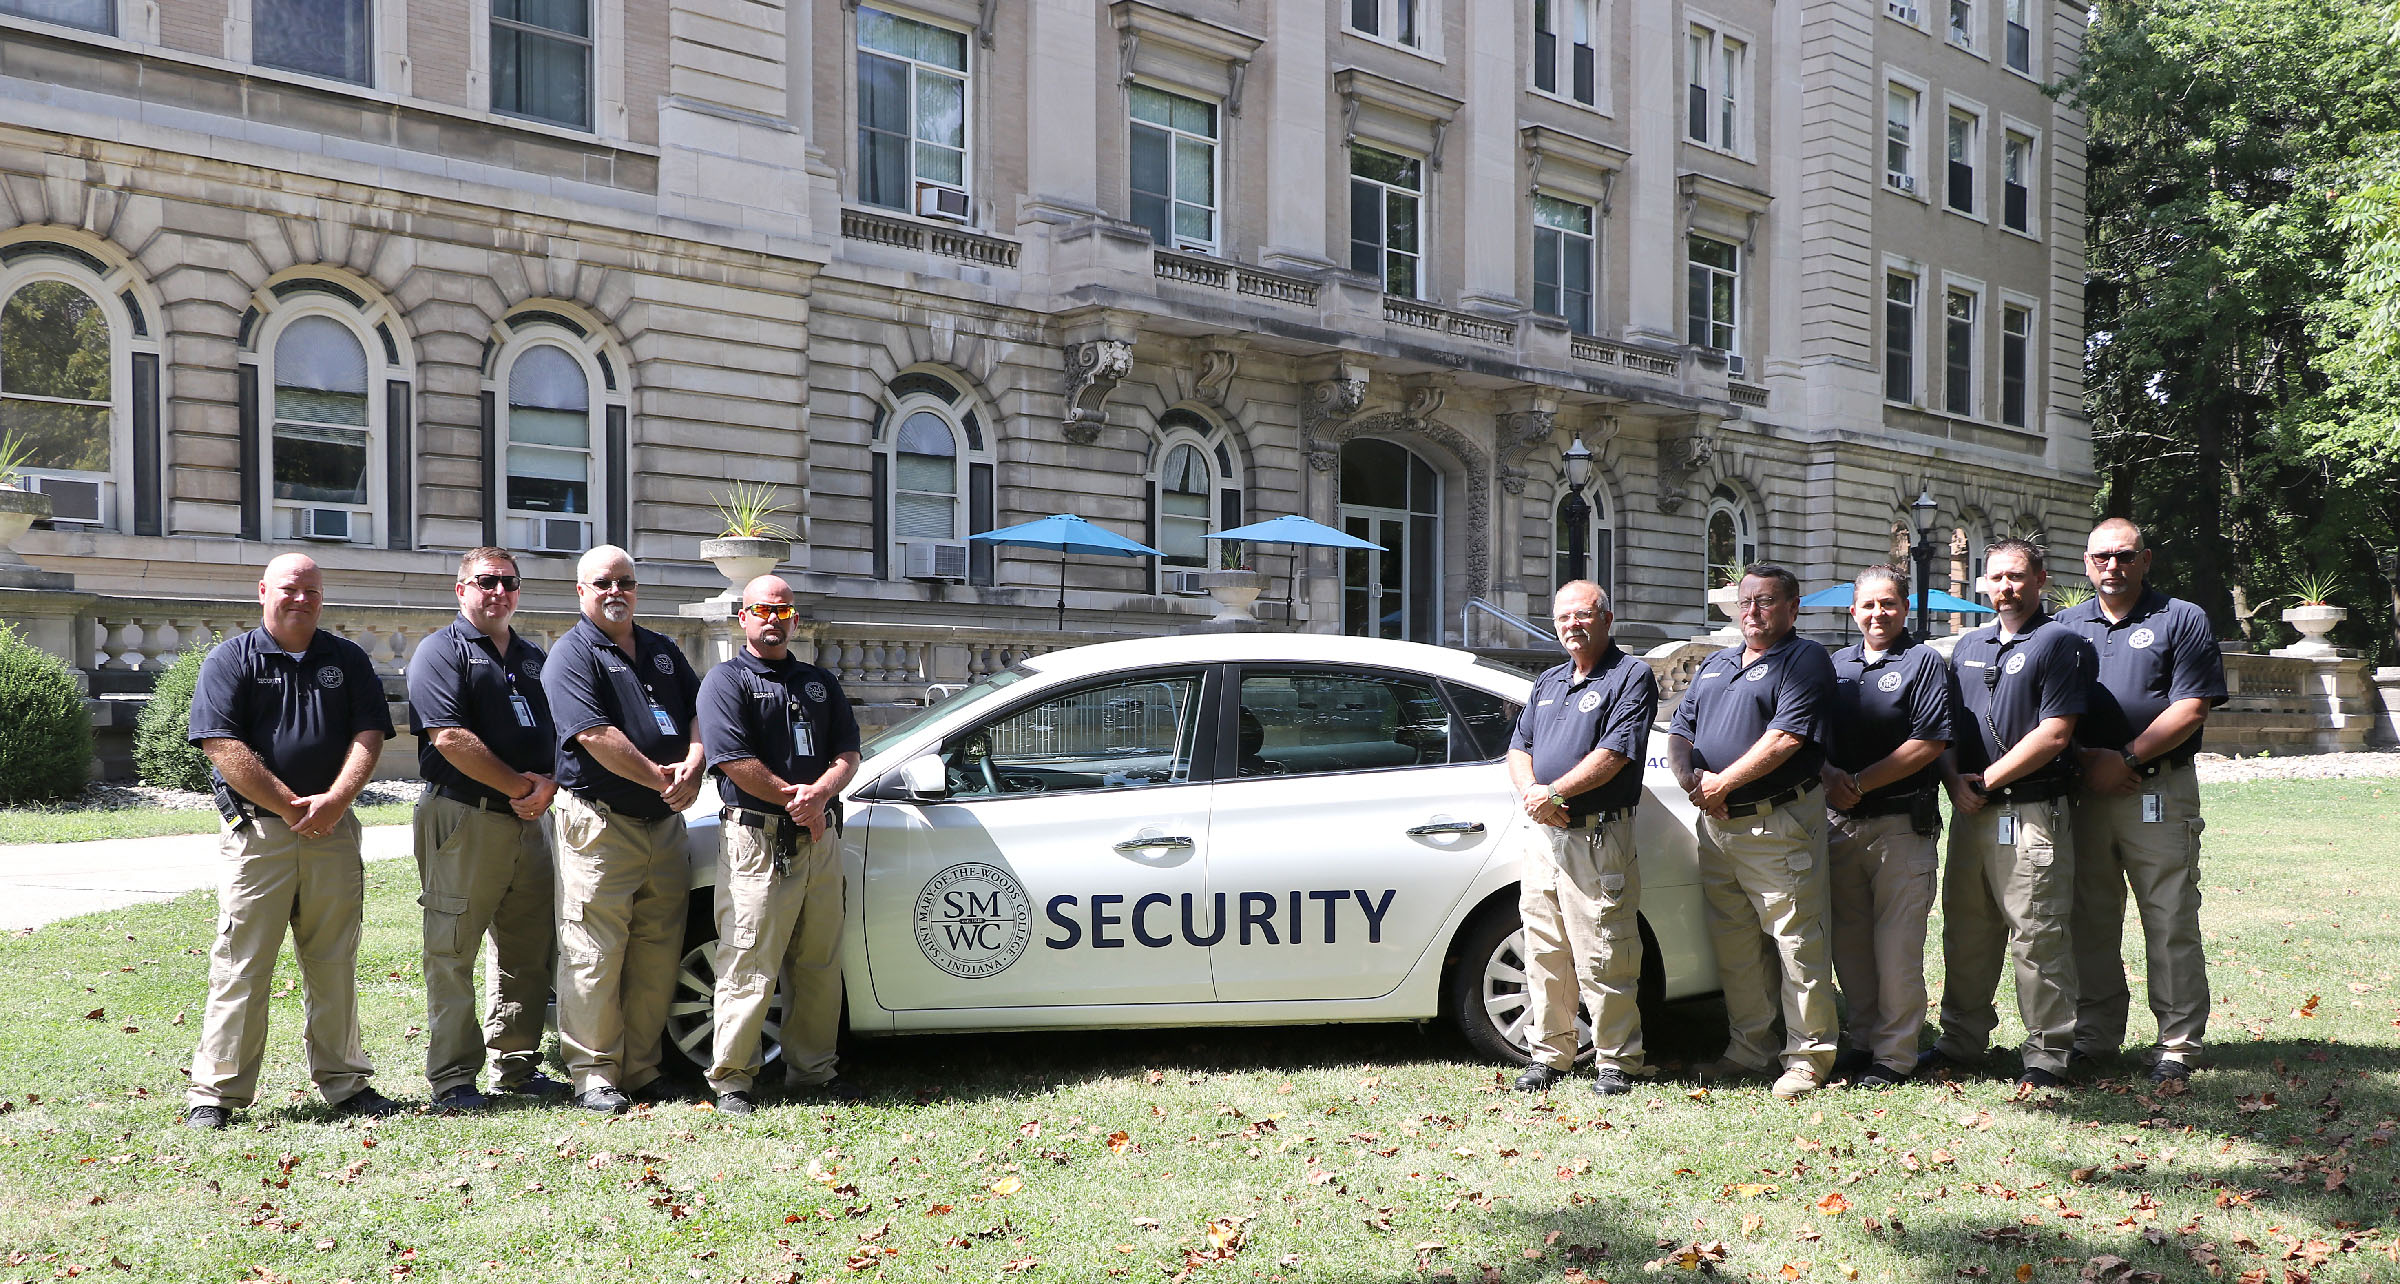 Campus Security with car